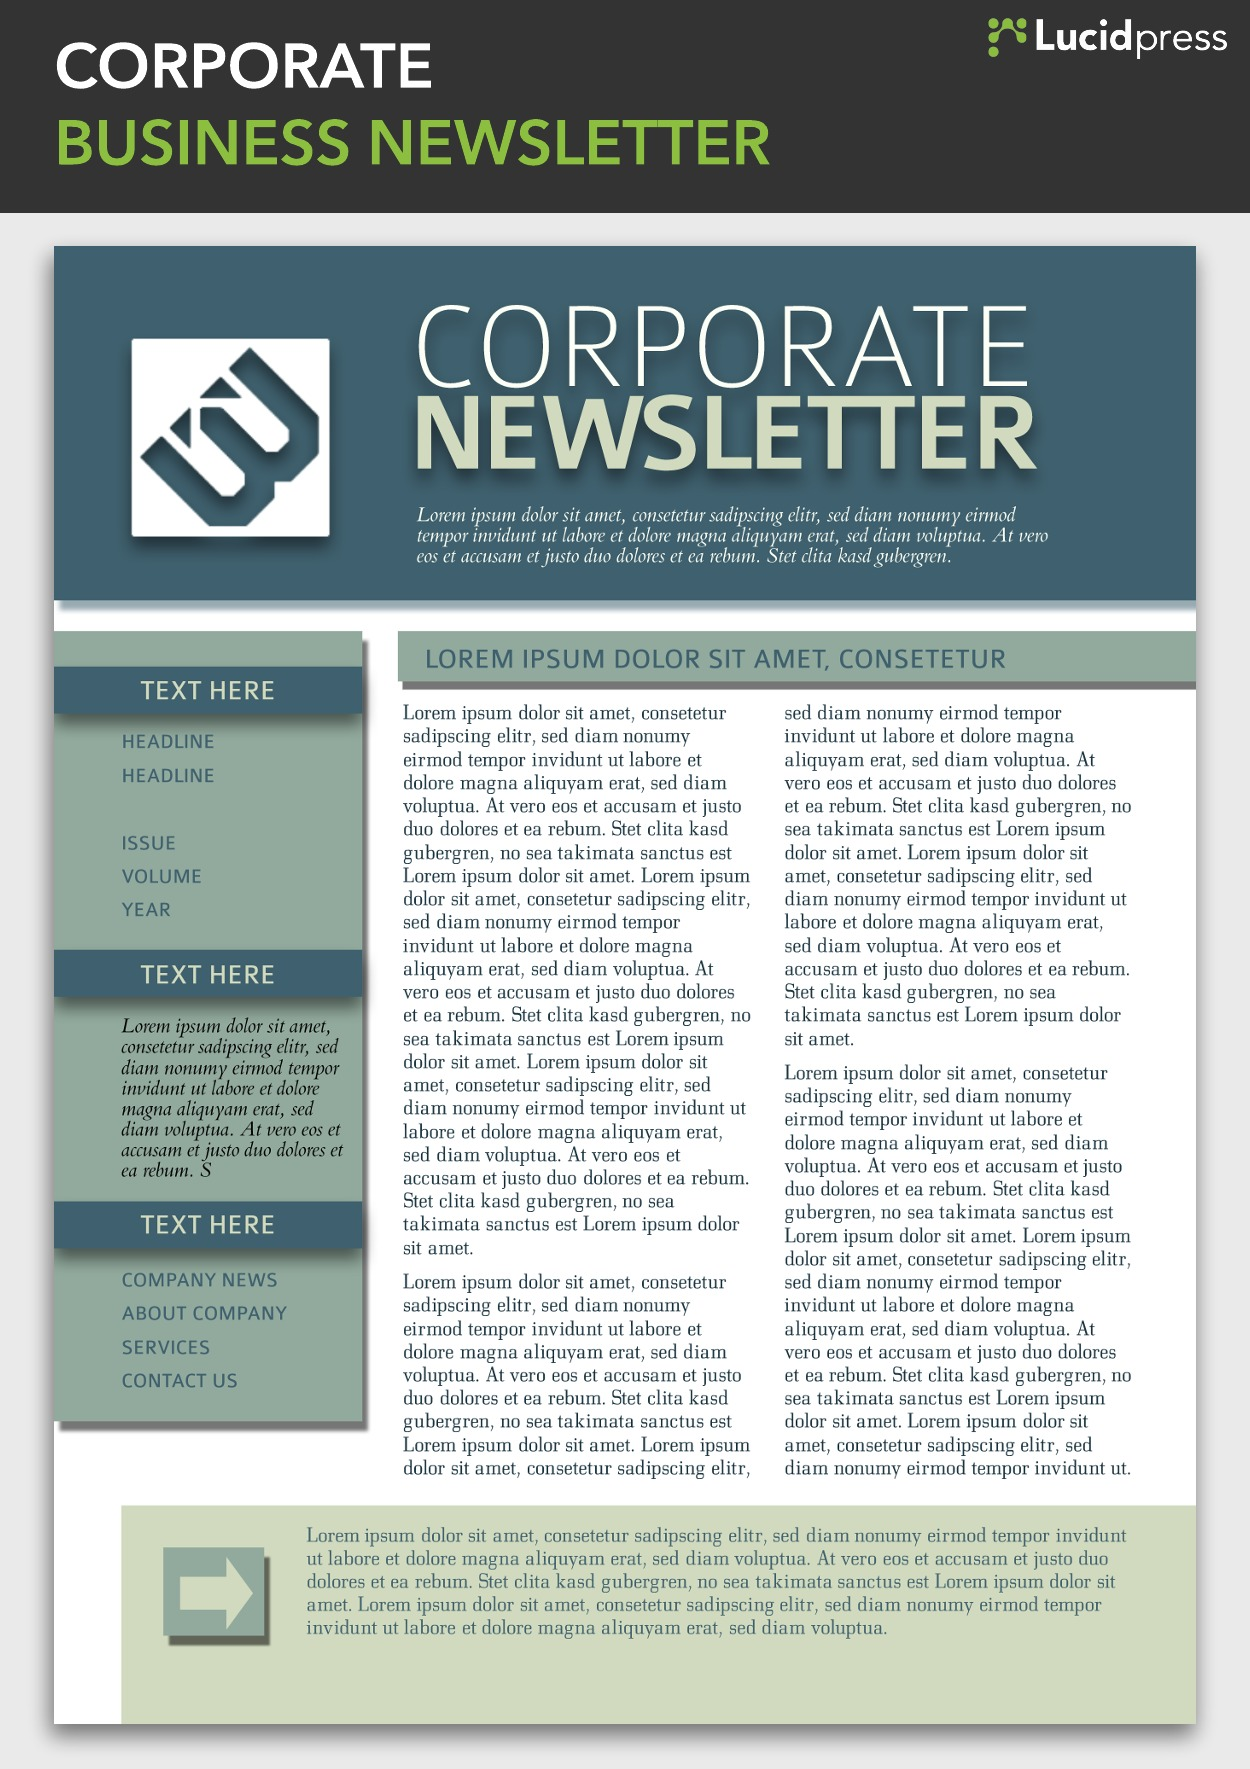 Corporate newsletter template corporate newsletter templates 13 best newsletter design ideas wajeb Choice Image